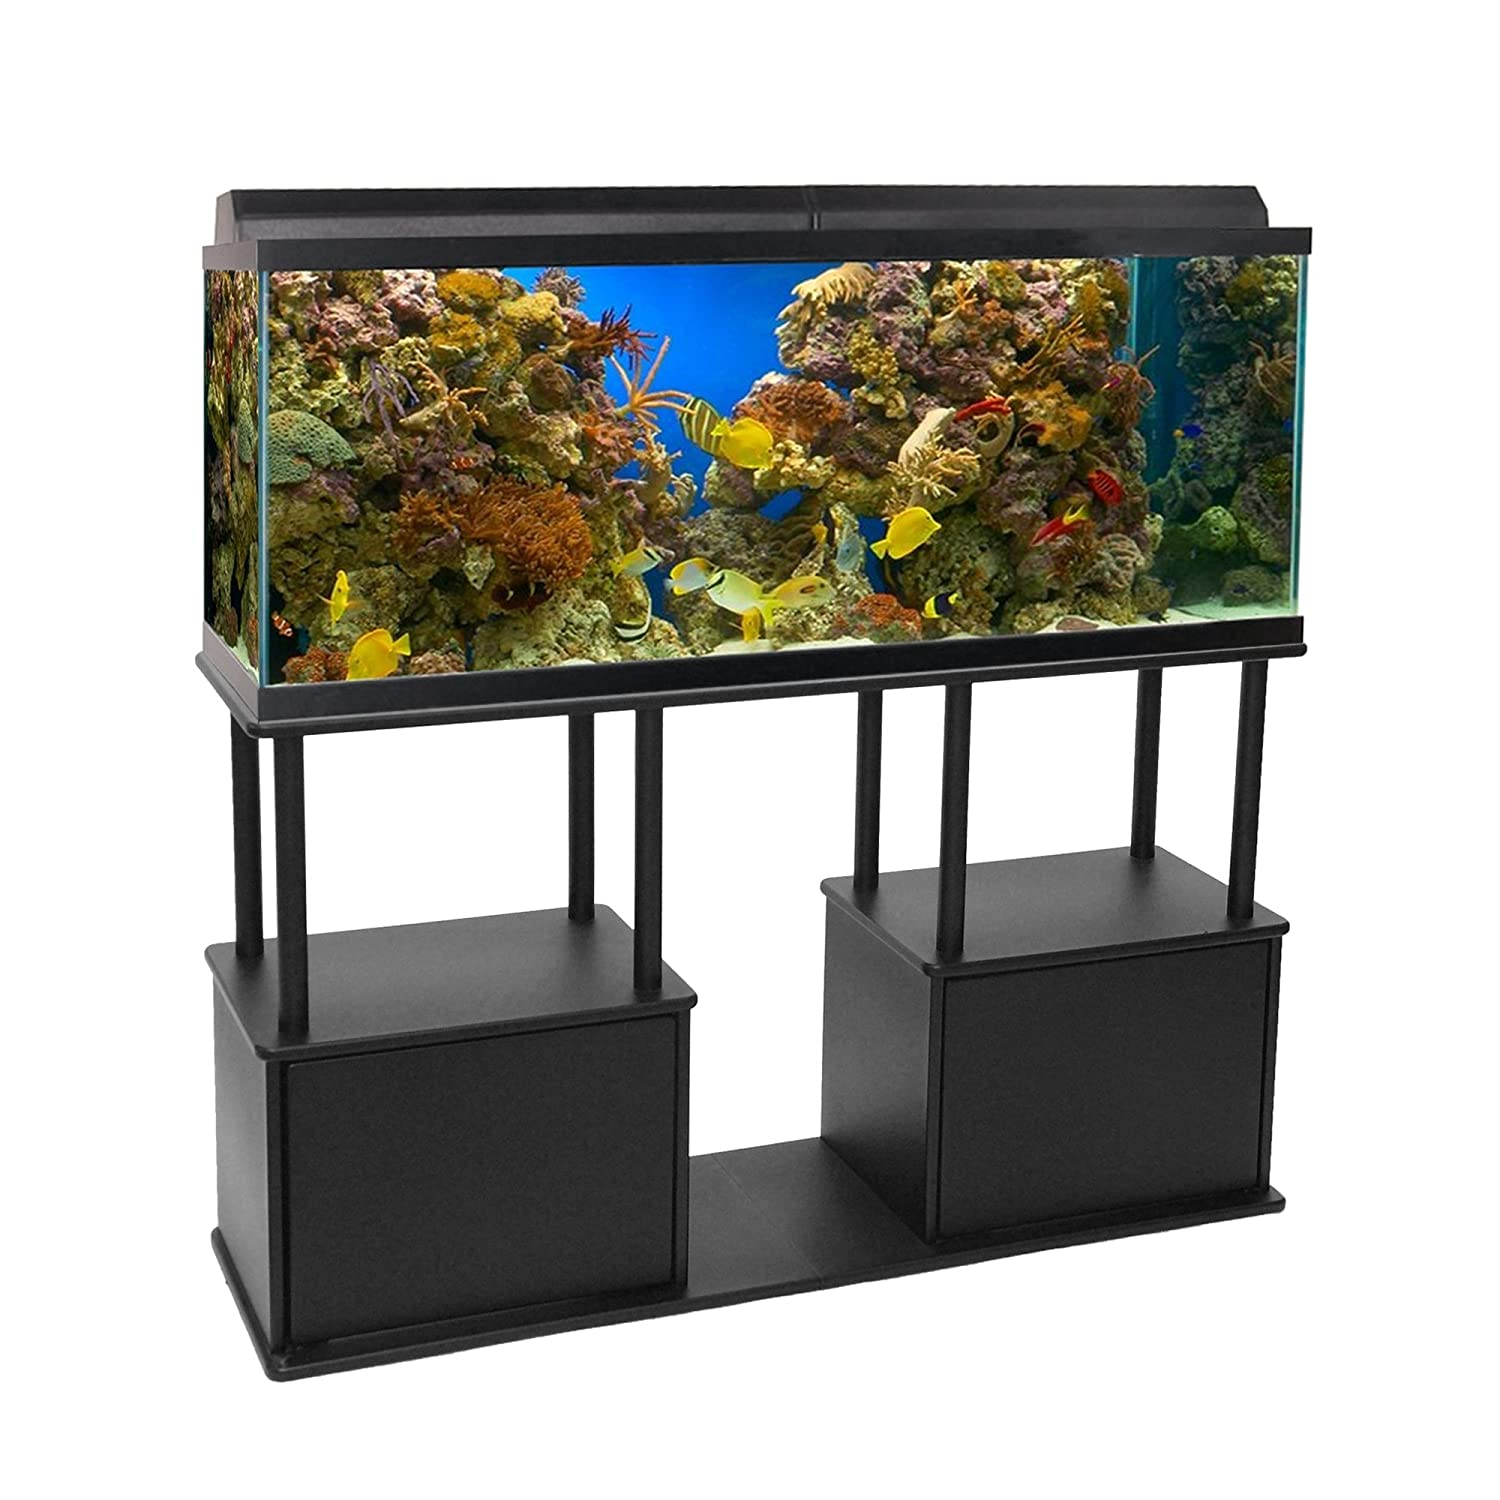 Amazon Aquatic Fundamentals Black Aquarium Stand with Shelf